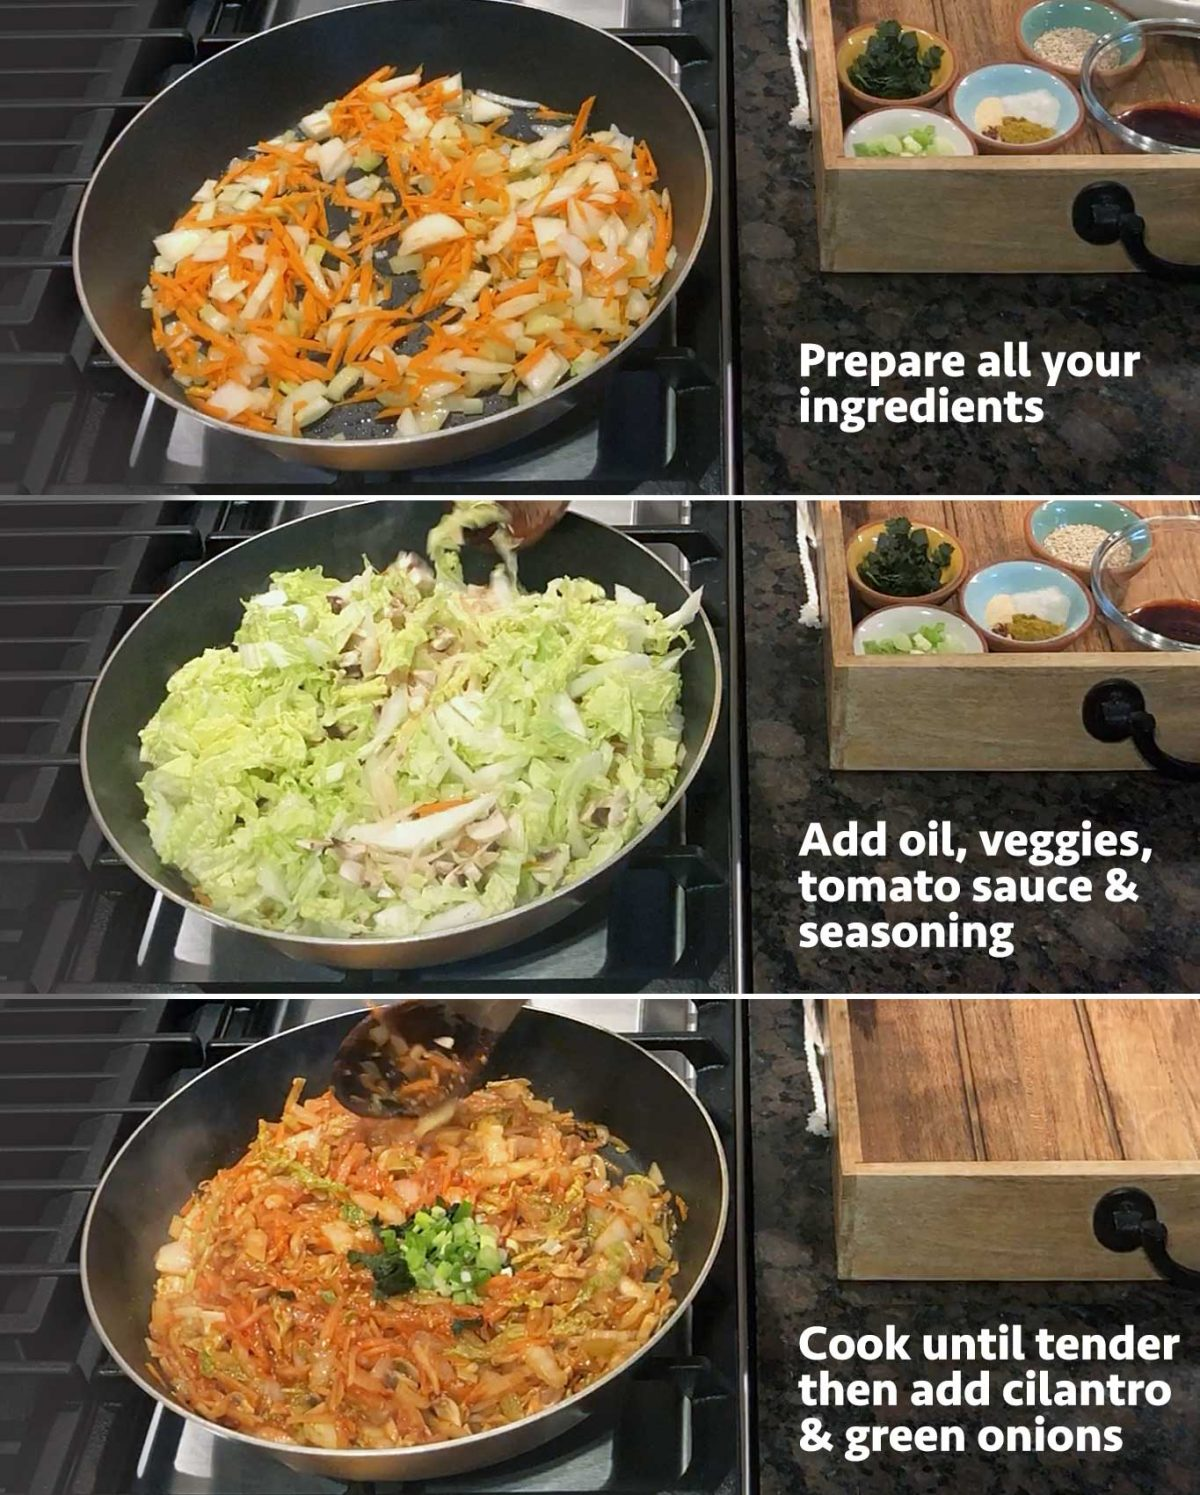 - Steps to prepare an allergen-friendly vegetable cooked mixture.